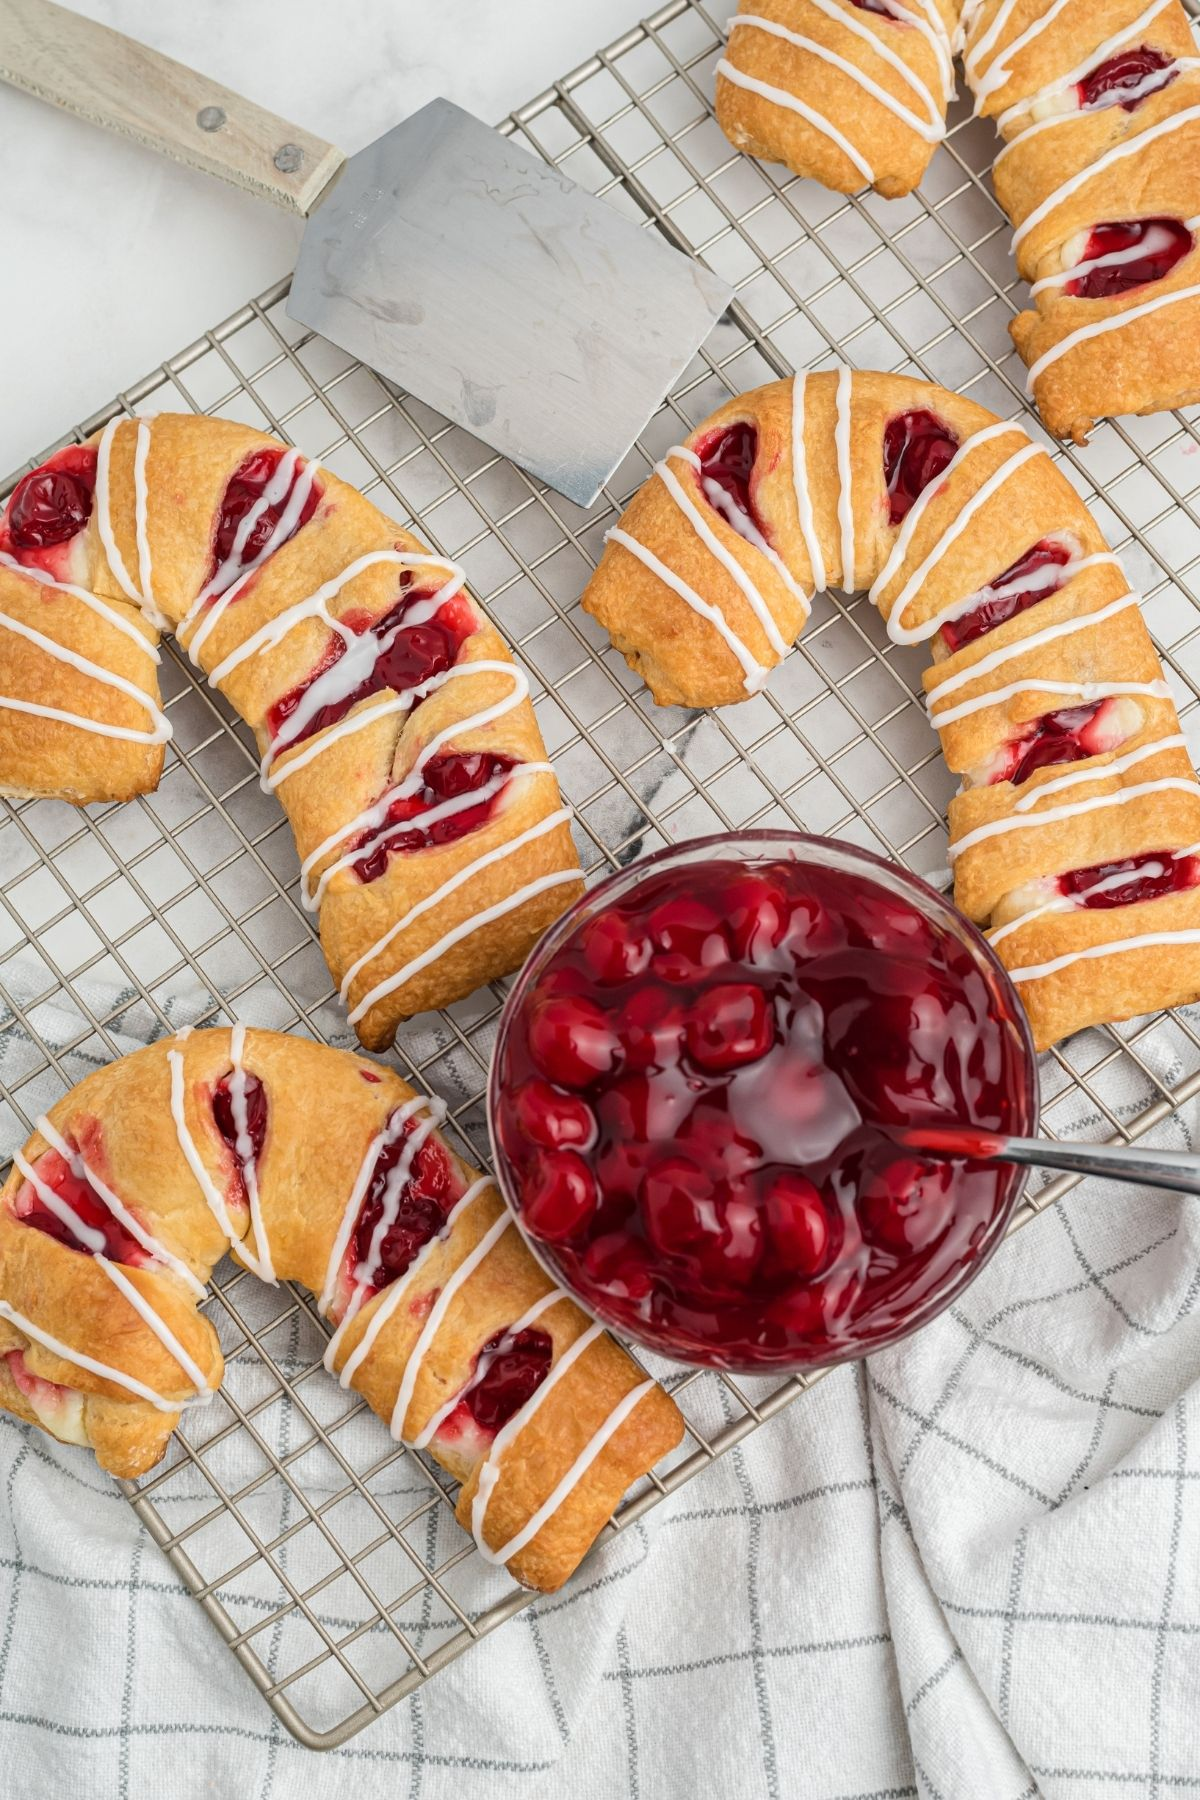 three danishes in the shape of candy canes with cherries